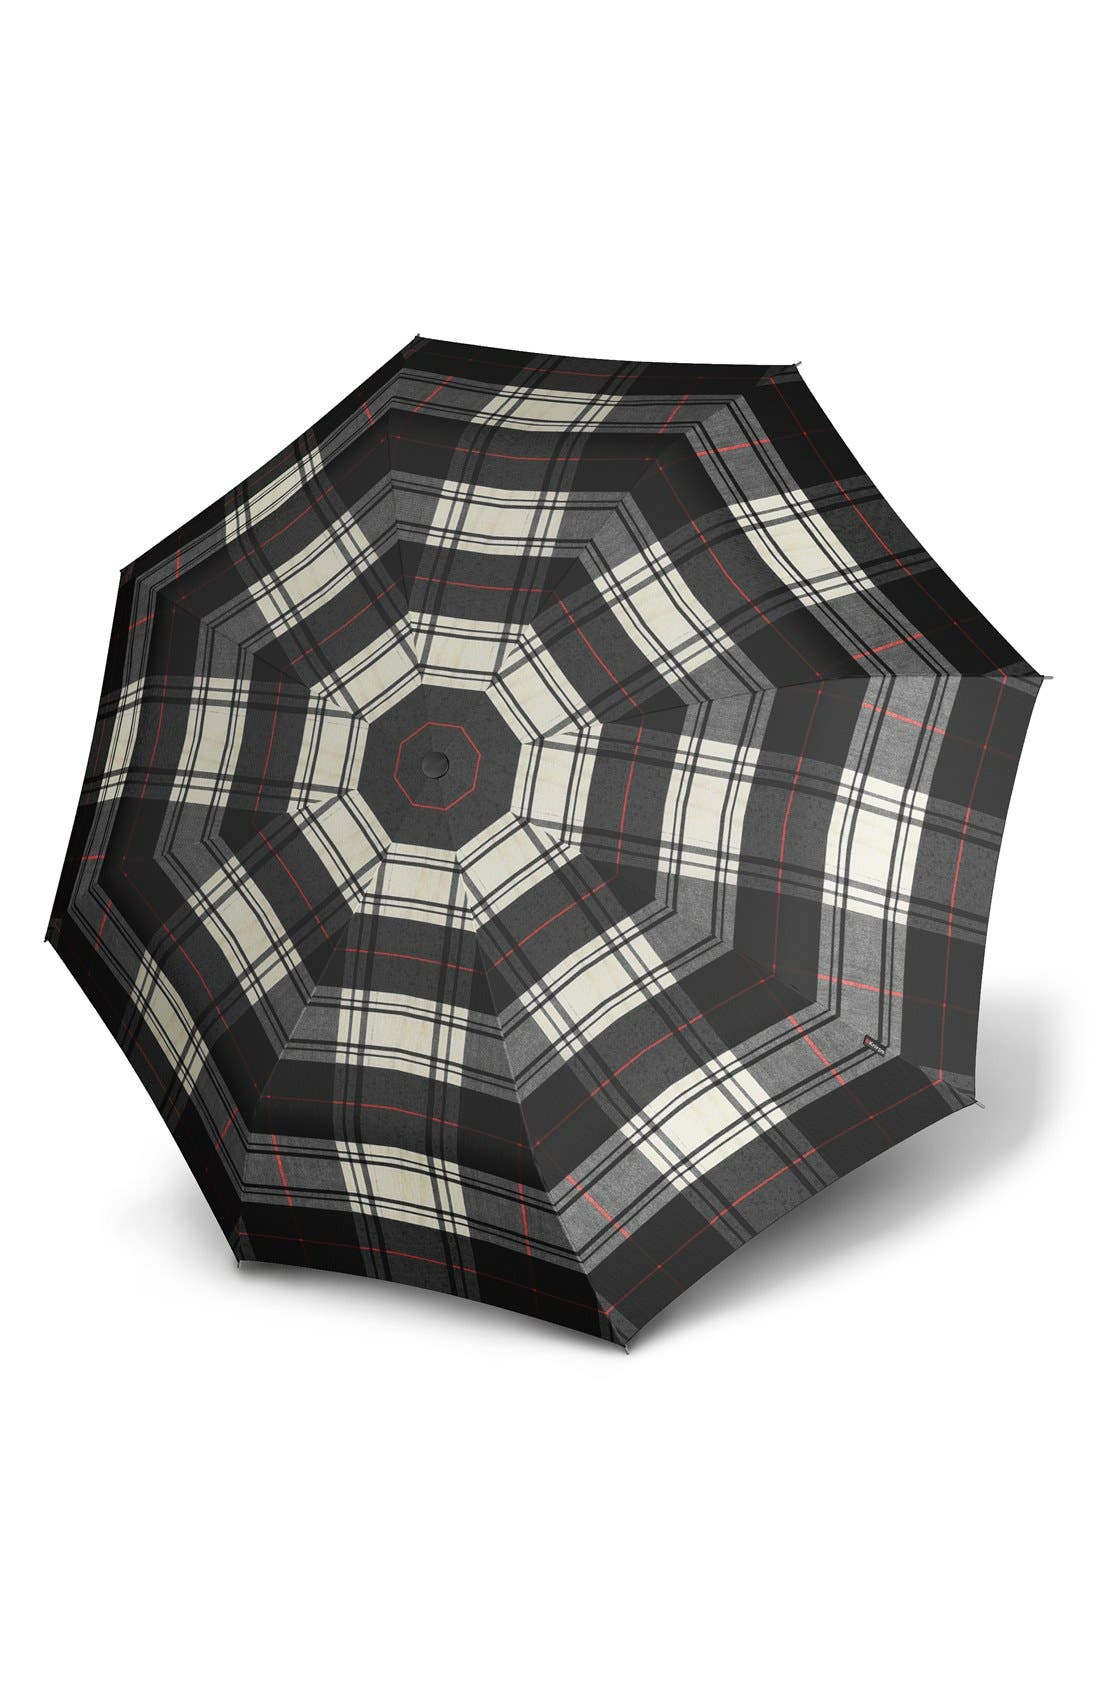 Main Image - Knirps 'Duomatic' Umbrella